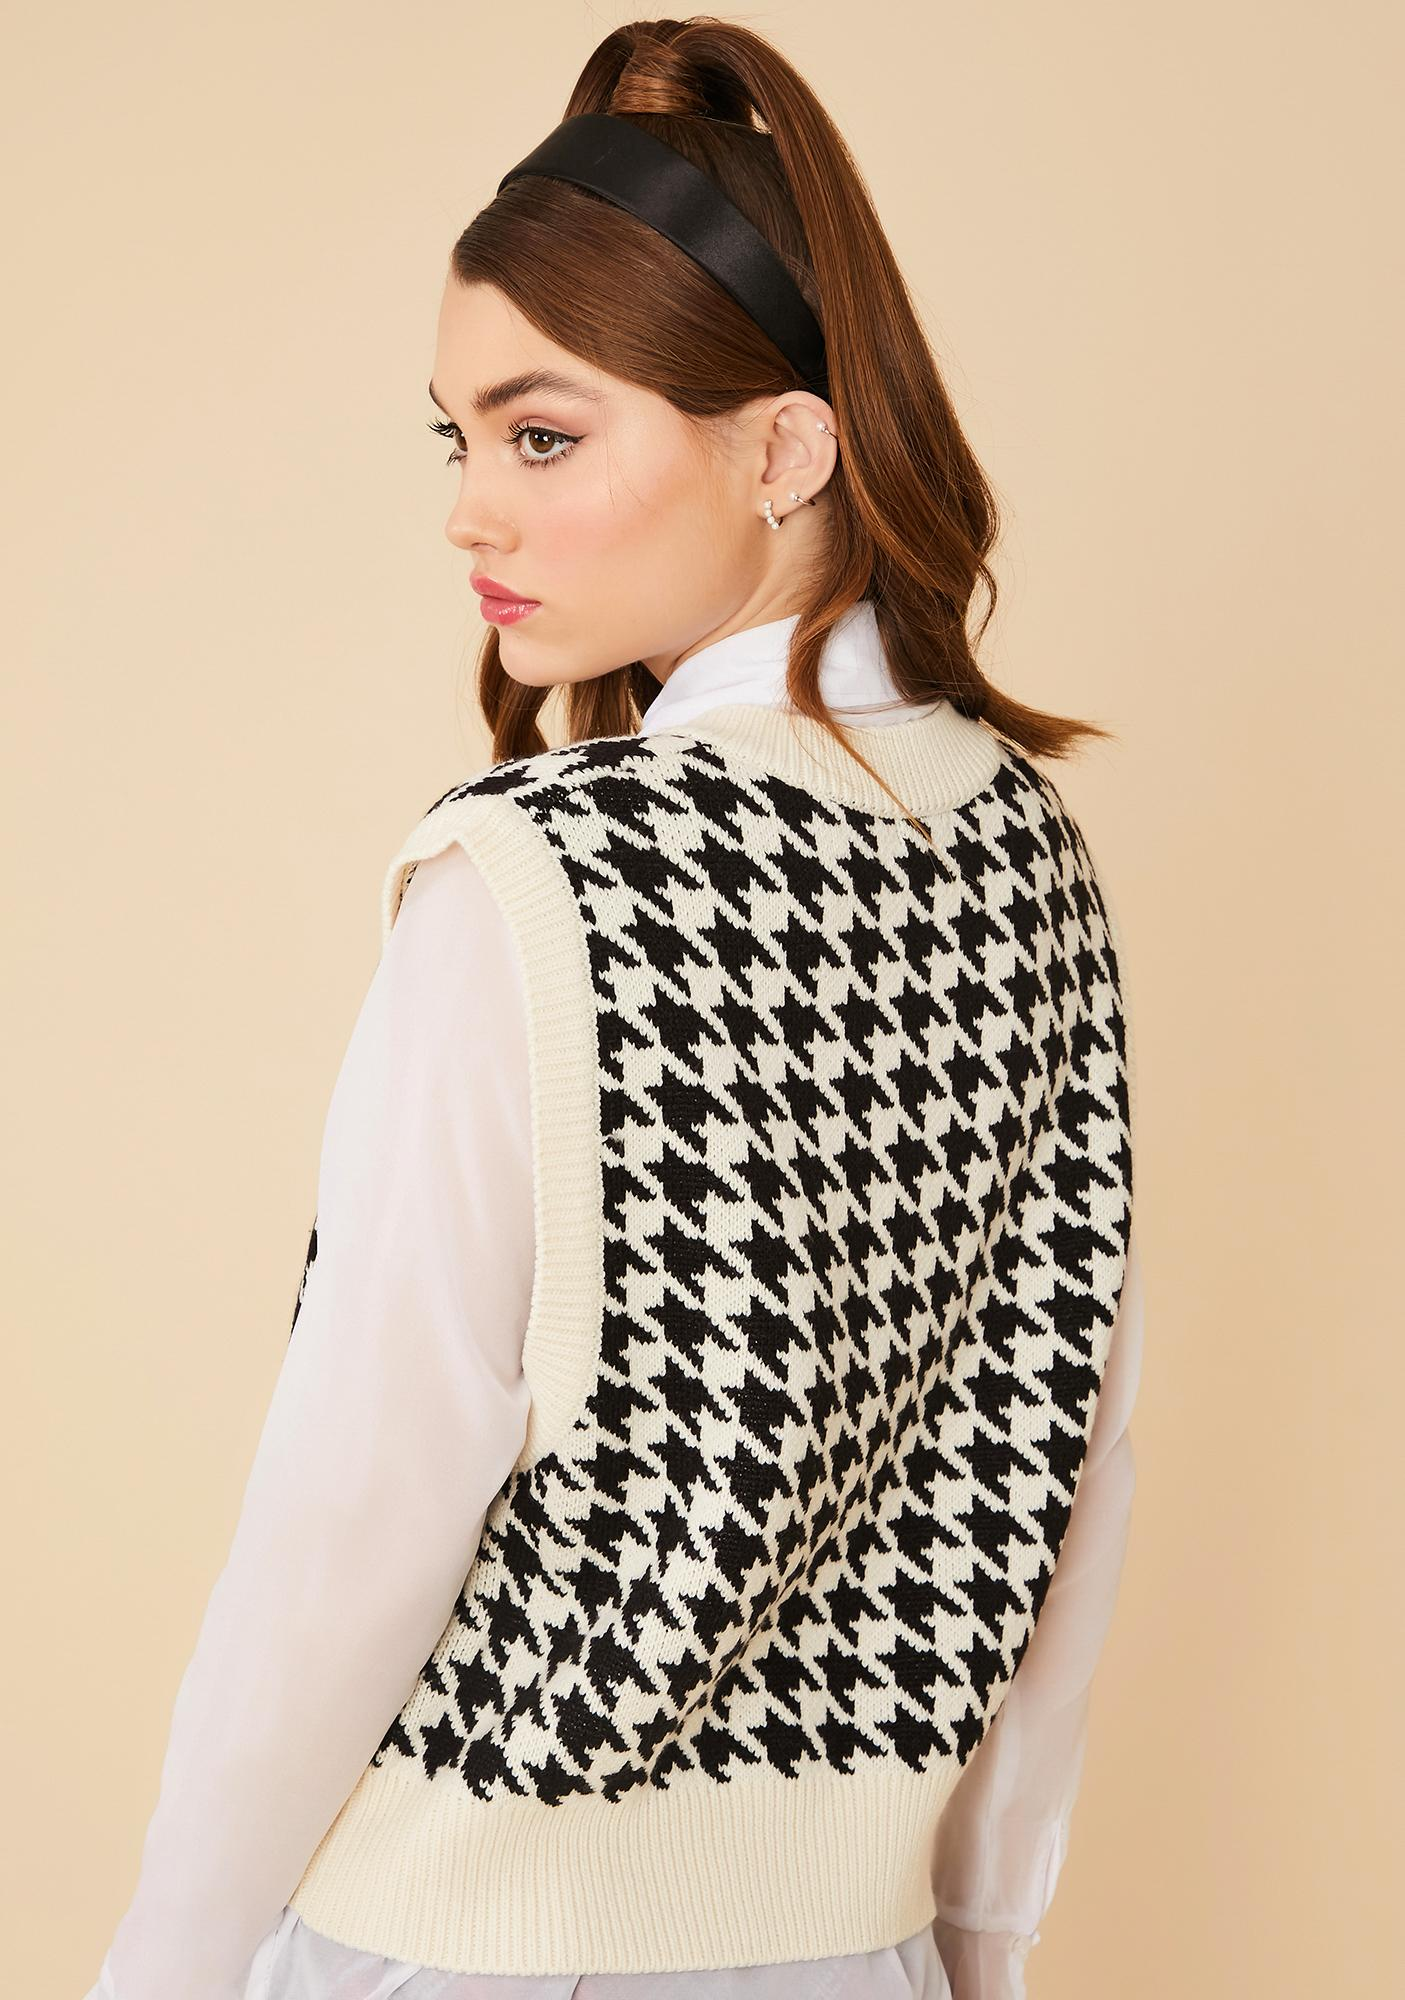 Angel Somebody Told Me Houndstooth Sweater Vest